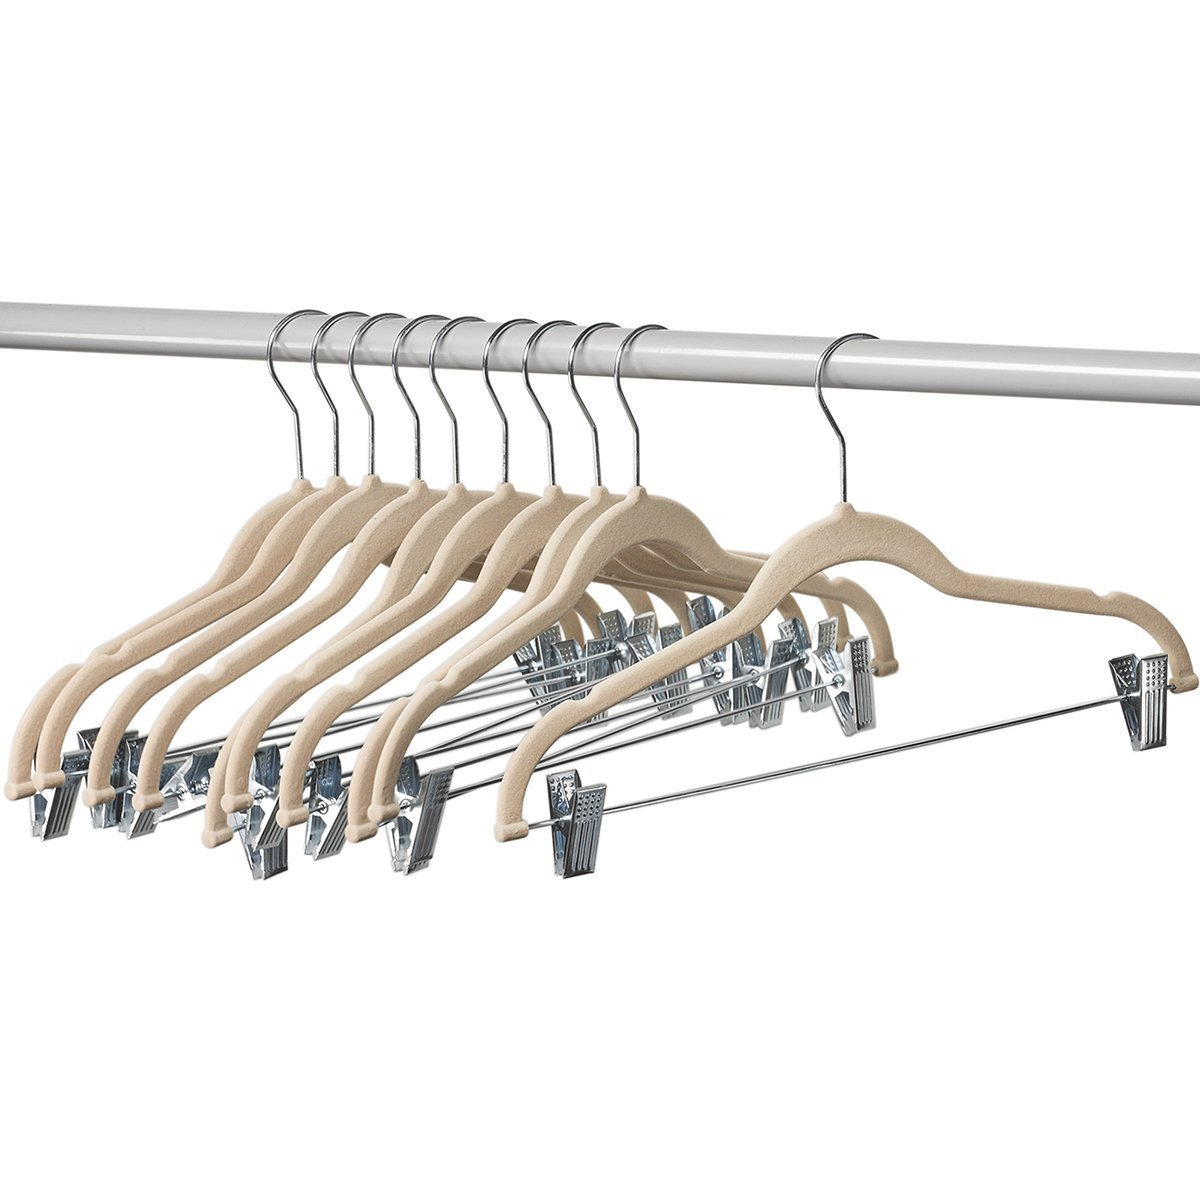 Home-it 50 Pack Clothes Hangers with Clips Ivory Velvet Hangers use for Skirt Hangers Clothes Hanger Pants Hangers Ultra Thin No Slip by Home-it